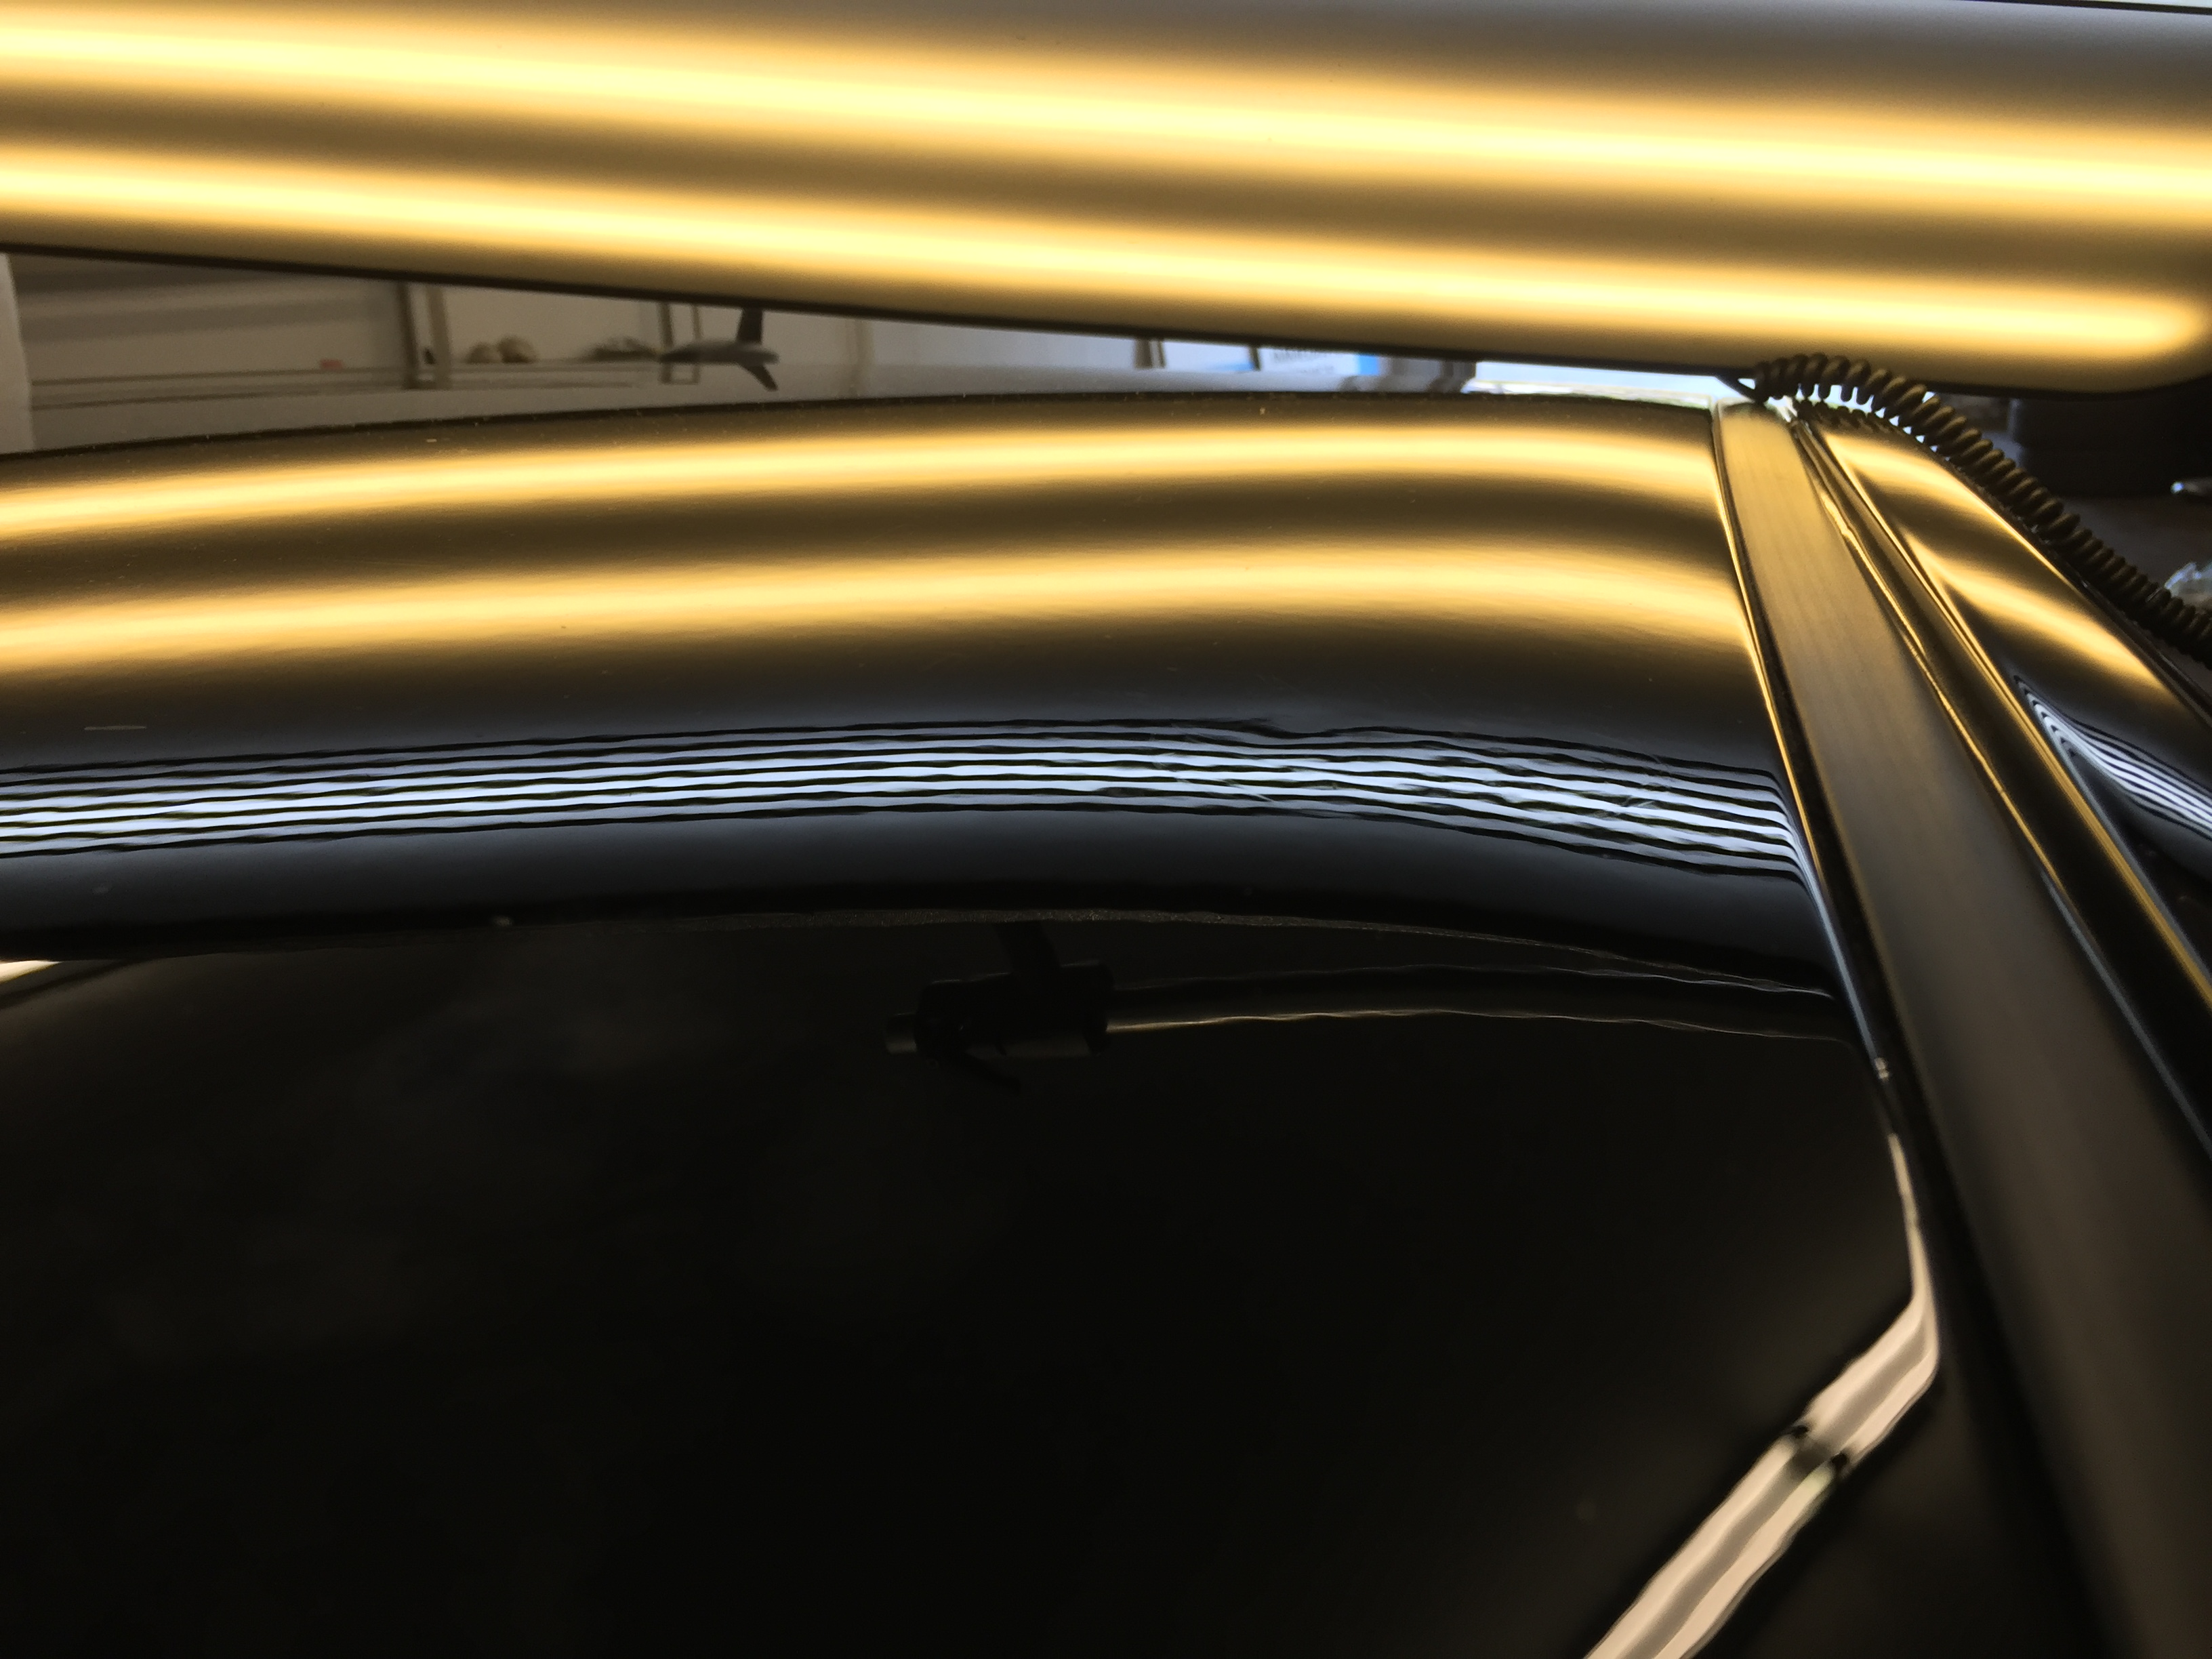 2015 Chevy Impala Large Dent Repair on Roof, Paintless Dent Repair Springfield, IL. Http://217dent.com